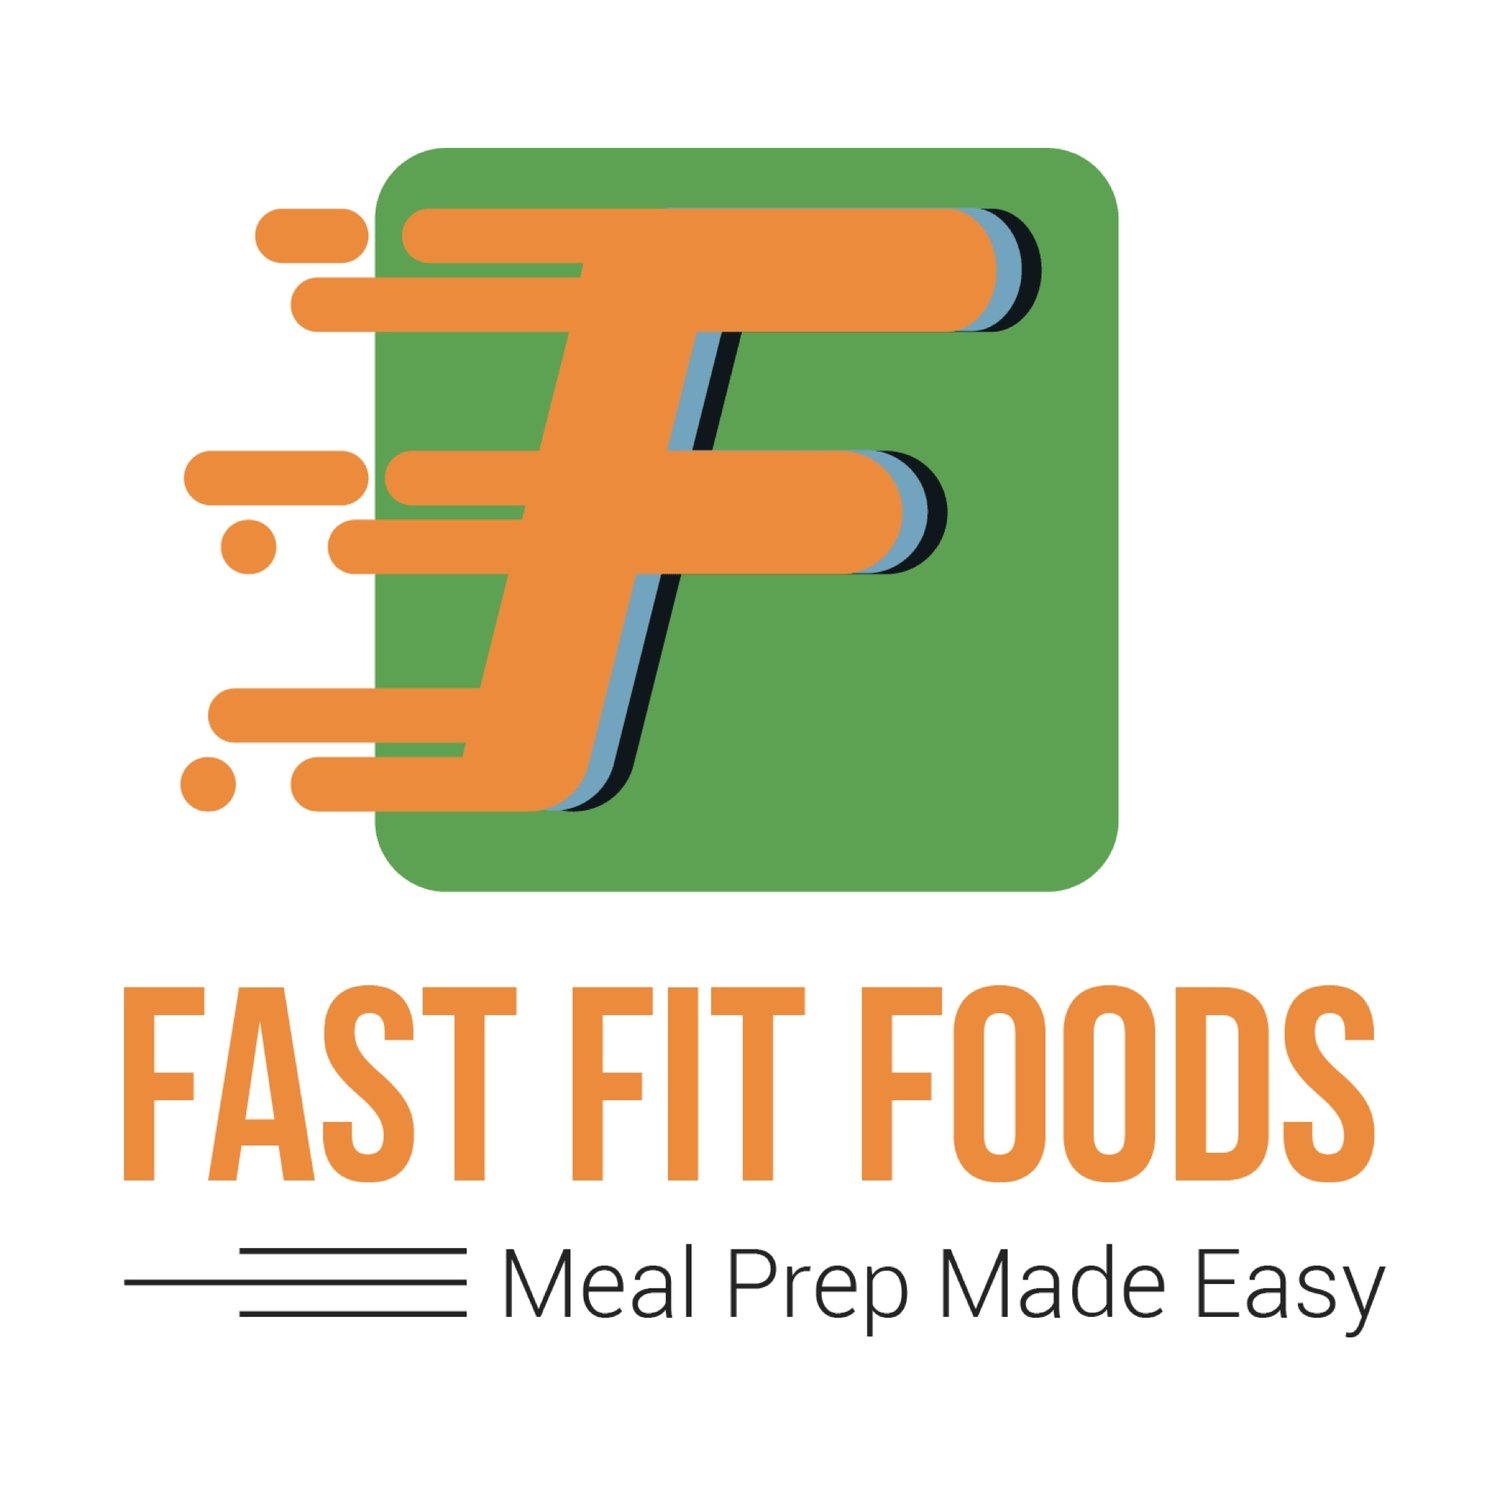 Fast Fit Foods